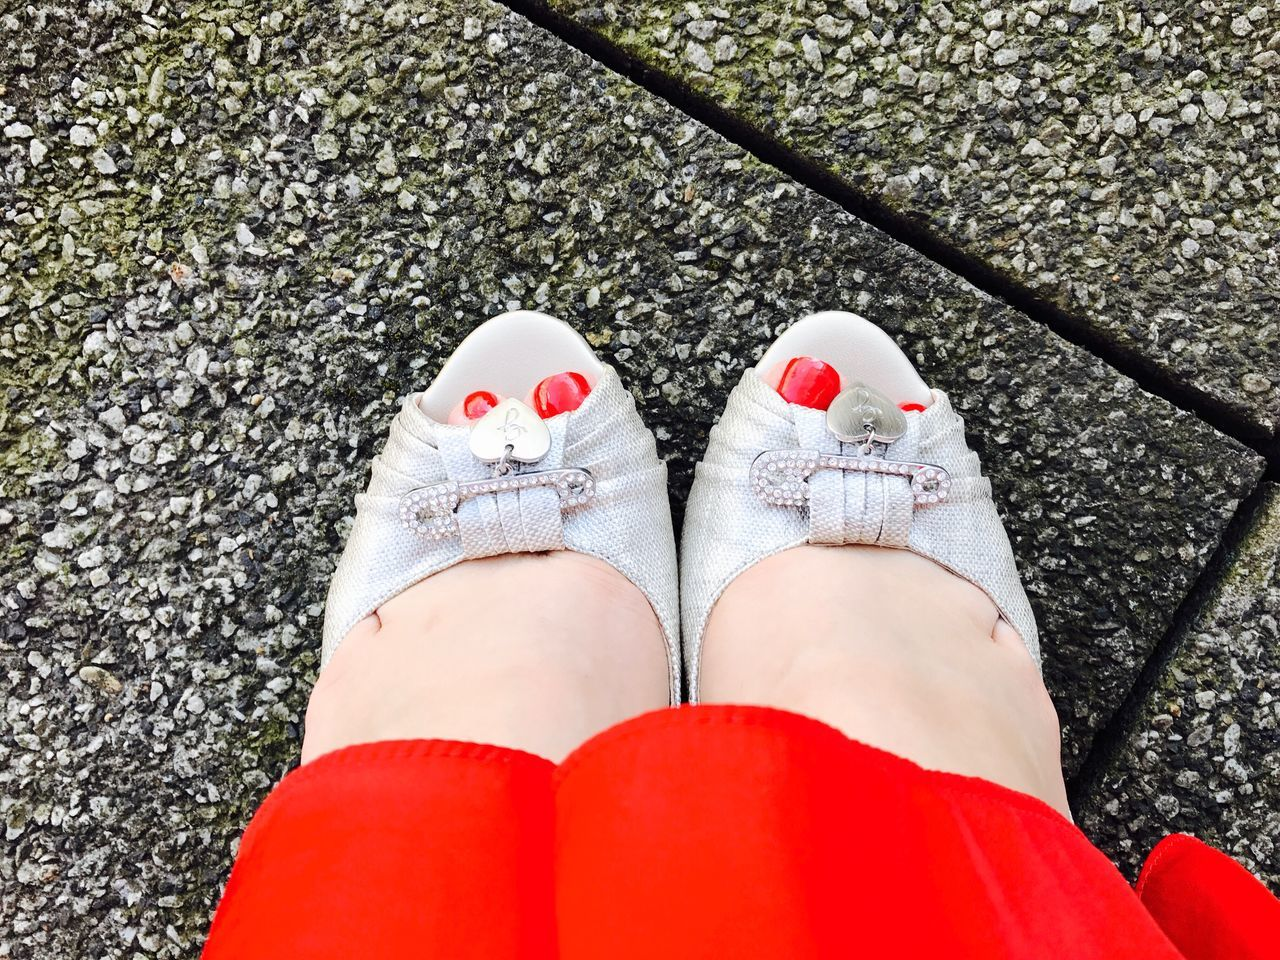 Human Leg Low Section Red Human Body Part One Person High Angle View Personal Perspective Human Foot Standing Day Shoe One Woman Only Real People Outdoors Women Nail Polish Fashion Lifestyles Only Women Style Fashion Red Detail